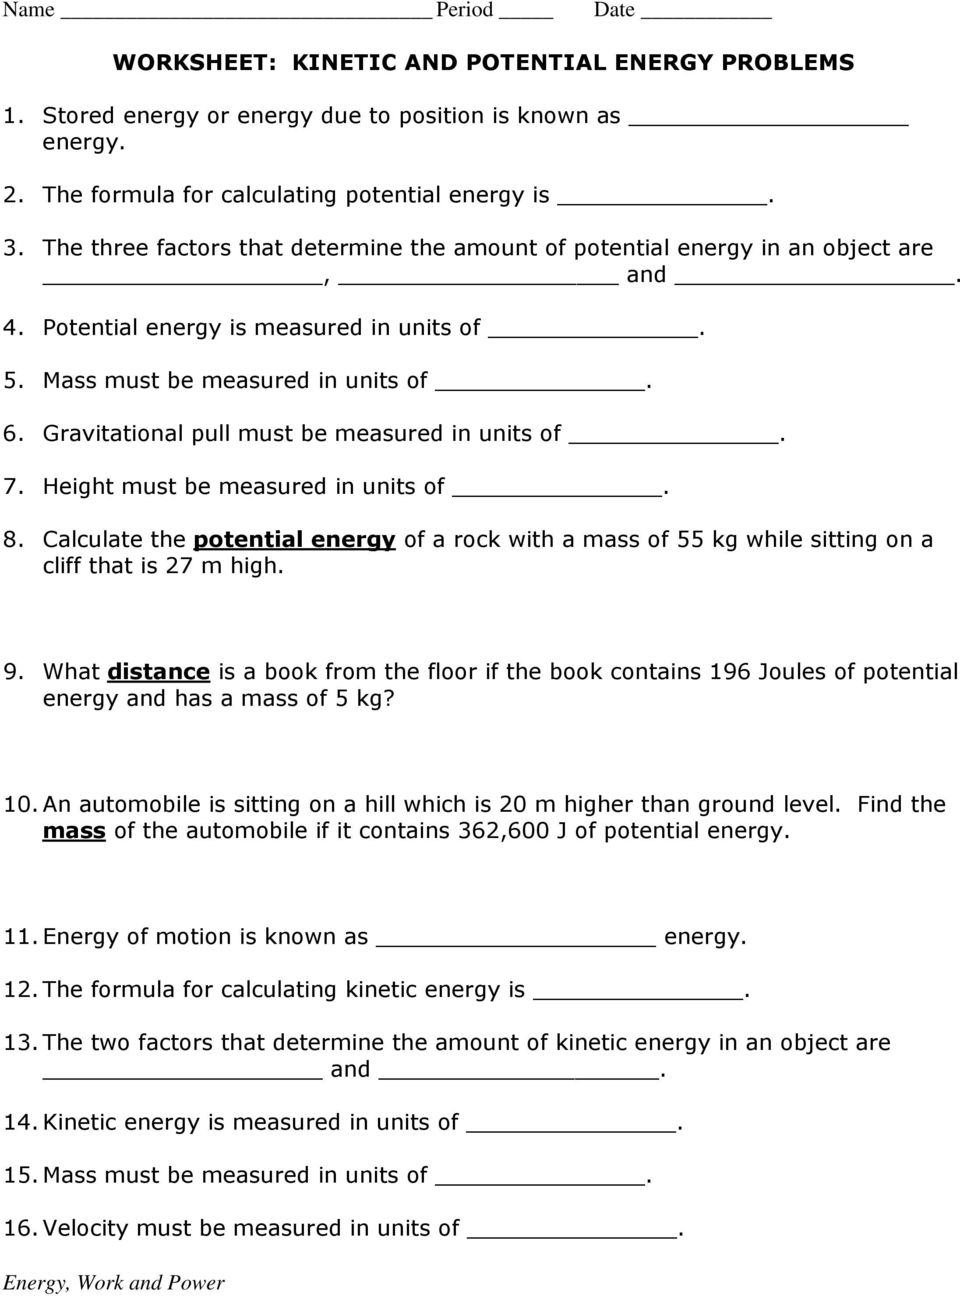 Kinetic And Potential Energy Worksheet Answers : Mlrx.info